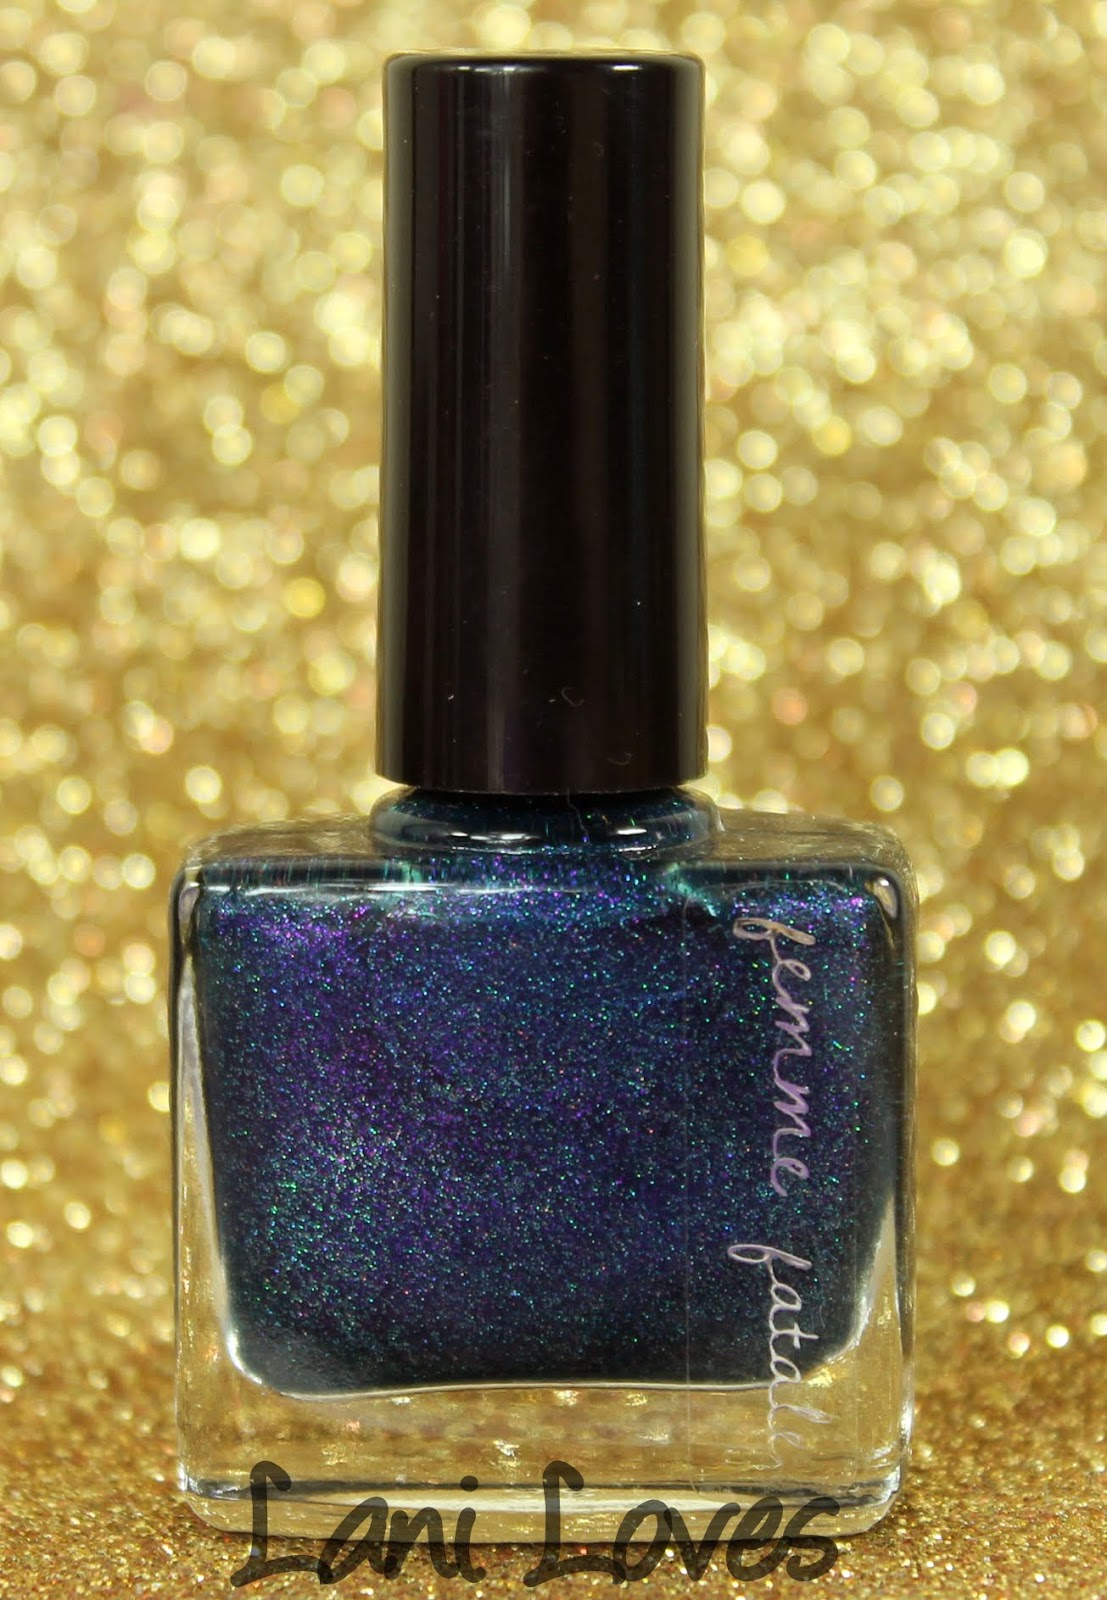 Femme Fatale Cosmetics Alone in the Darkness nail polish swatches & review